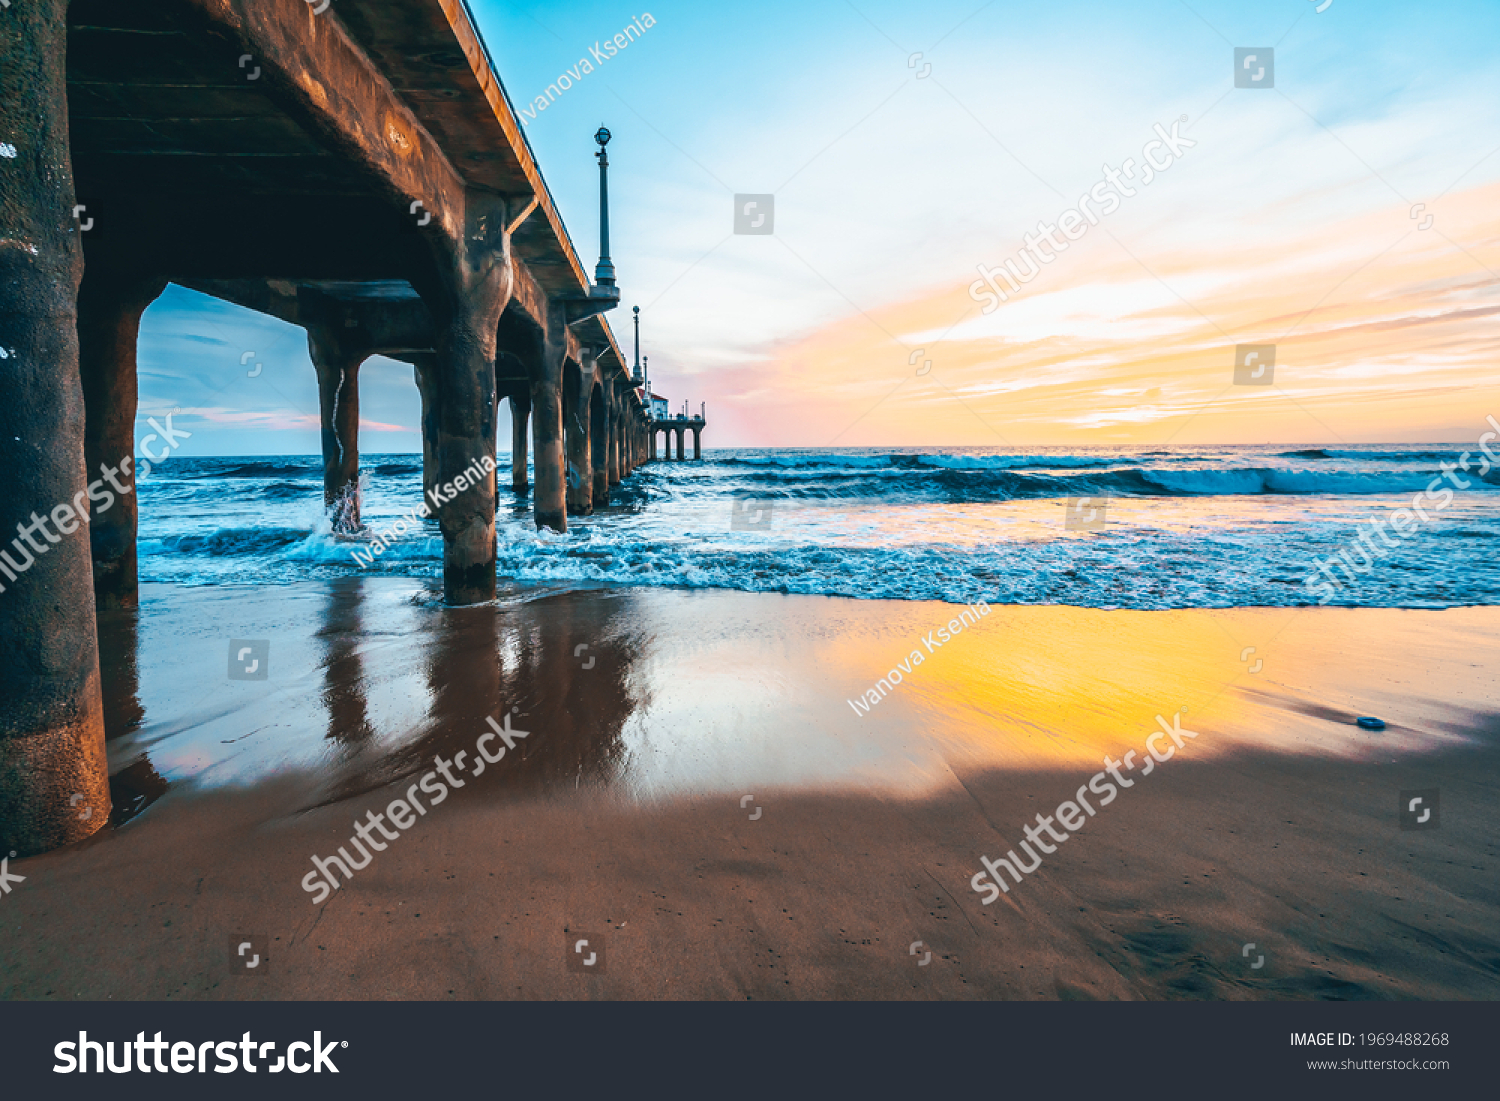 Manhattan beach pier at sunset, orange-pink sky with bright colors, beautiful landscape with ocean and sand #1969488268